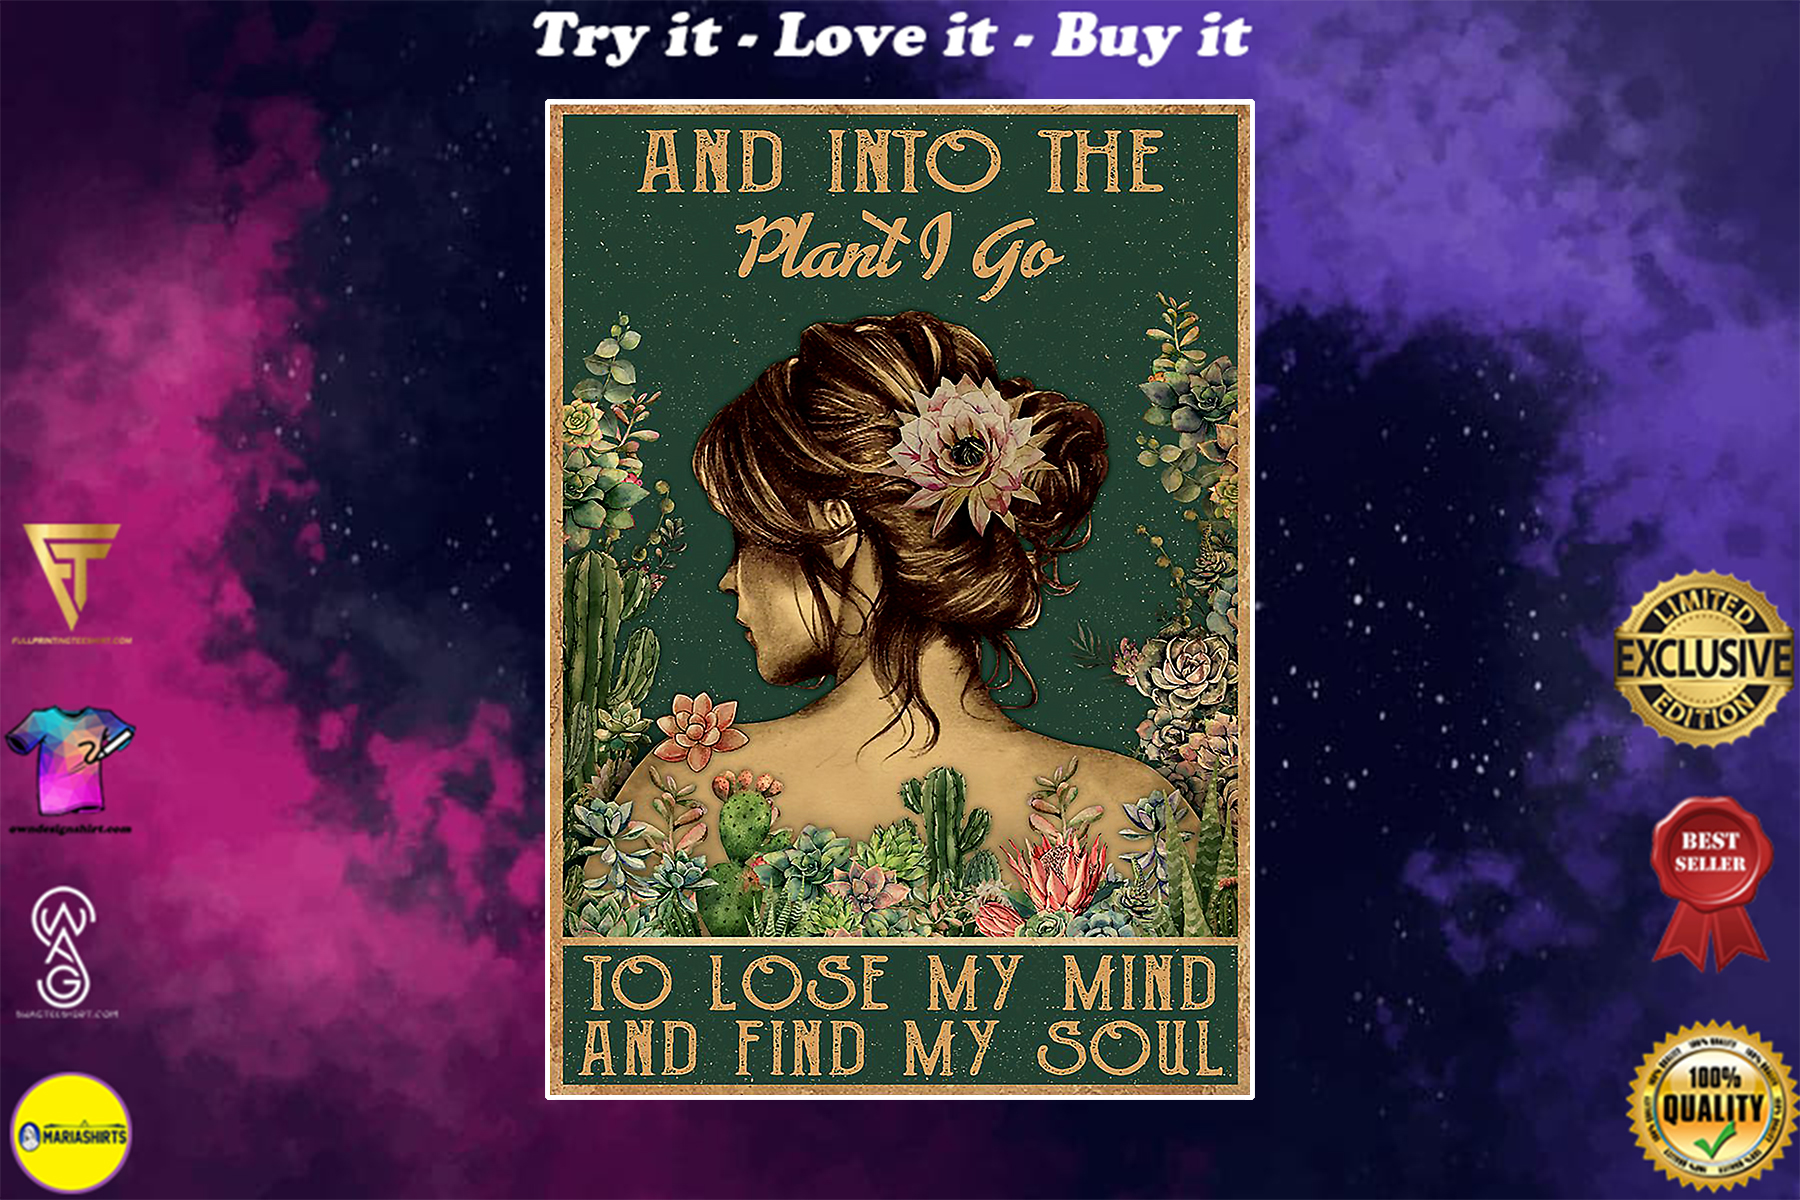 floral girl and into the plant i go to lose my mind and find my soul poster